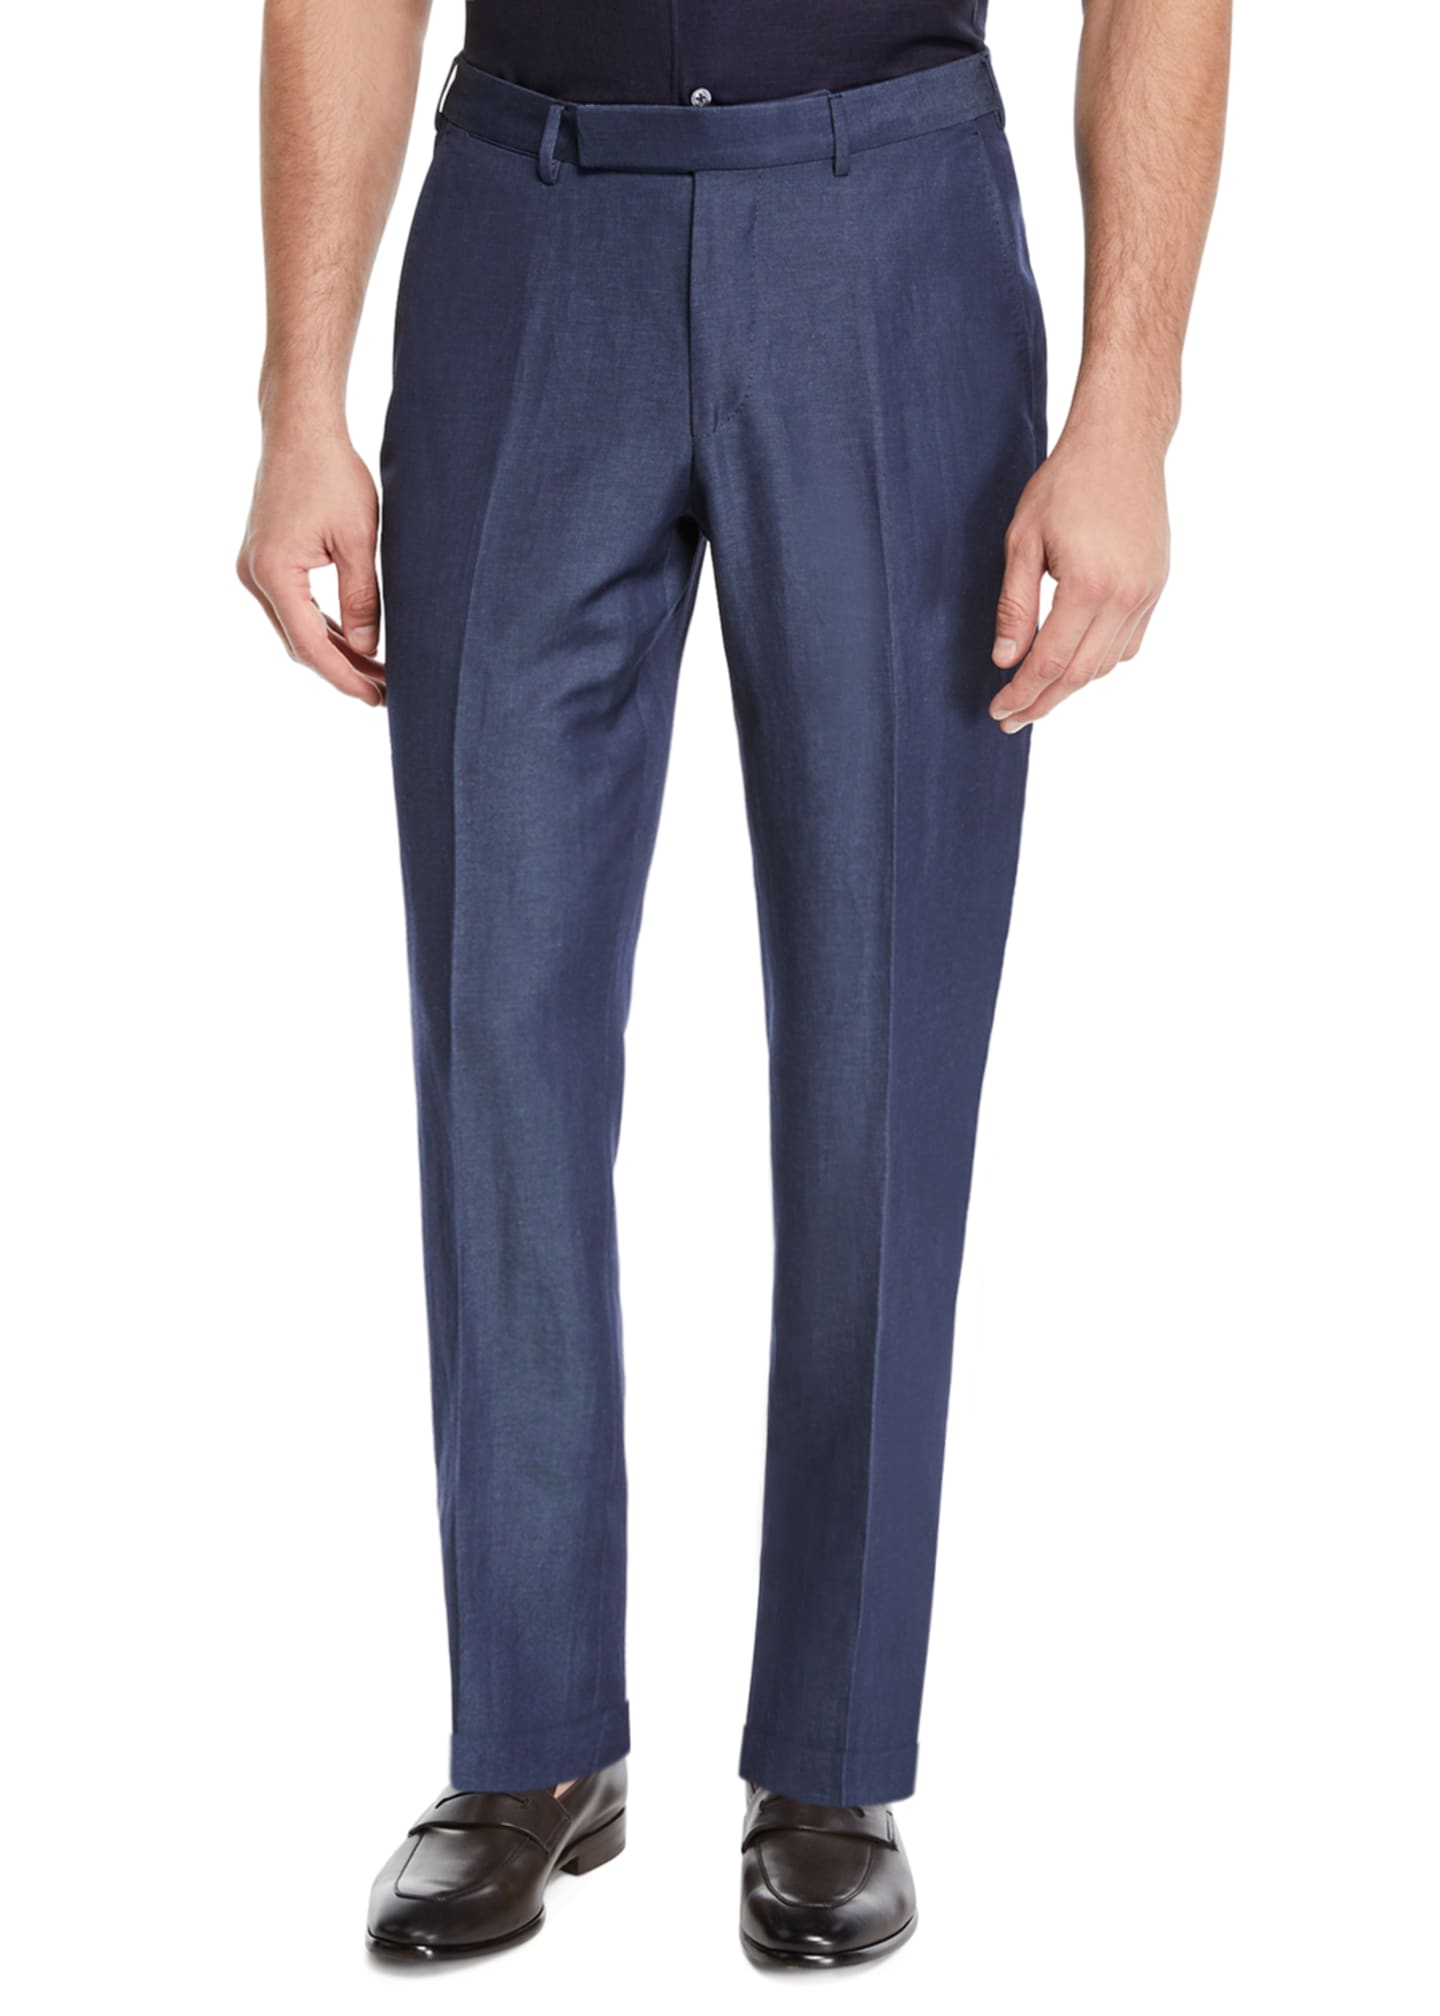 Image 1 of 3: Men's Wool/Linen Dress Trousers